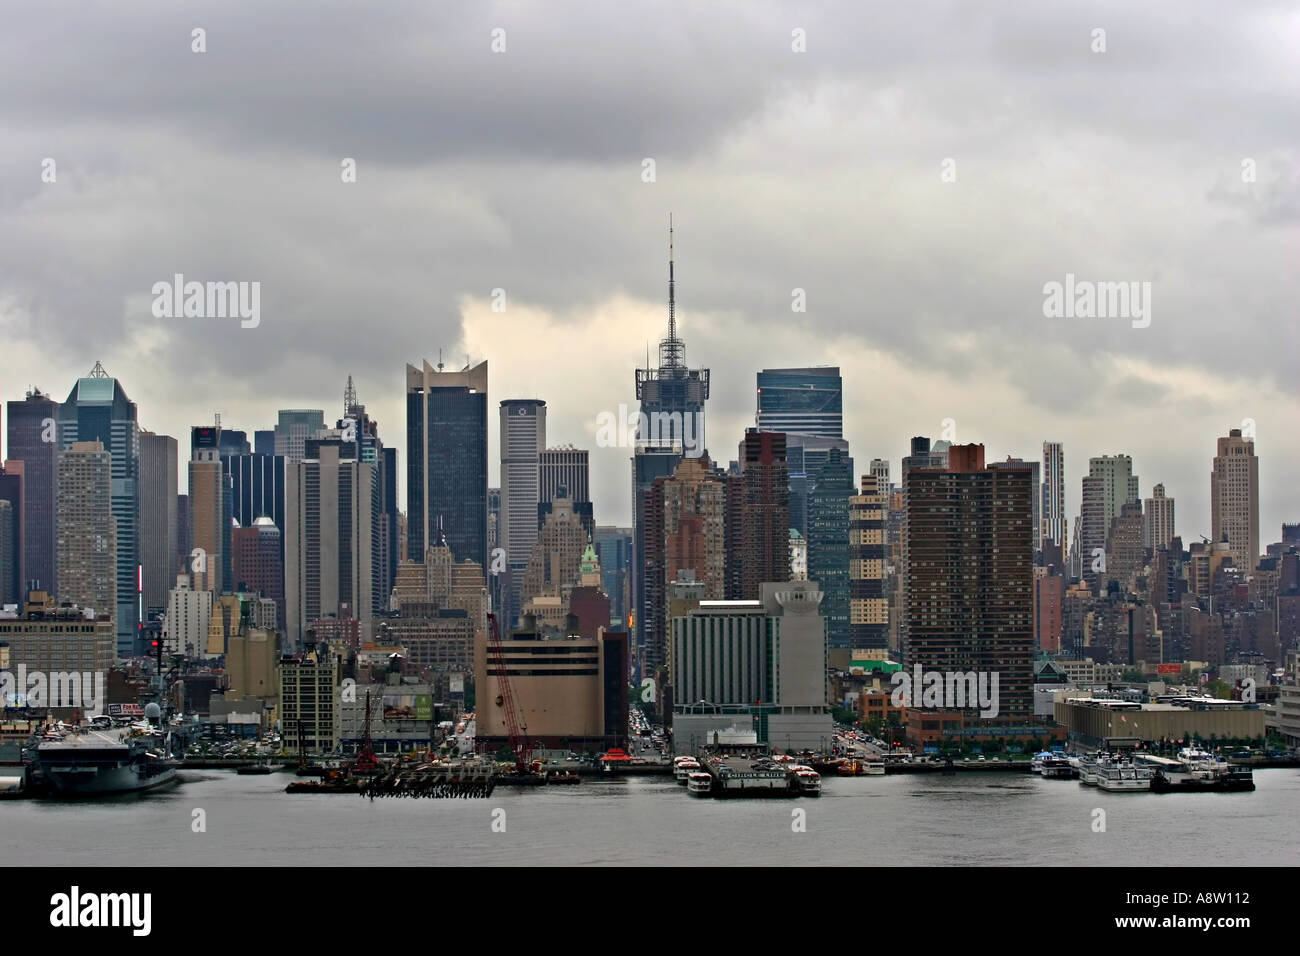 New York City right before a big storm - Stock Image